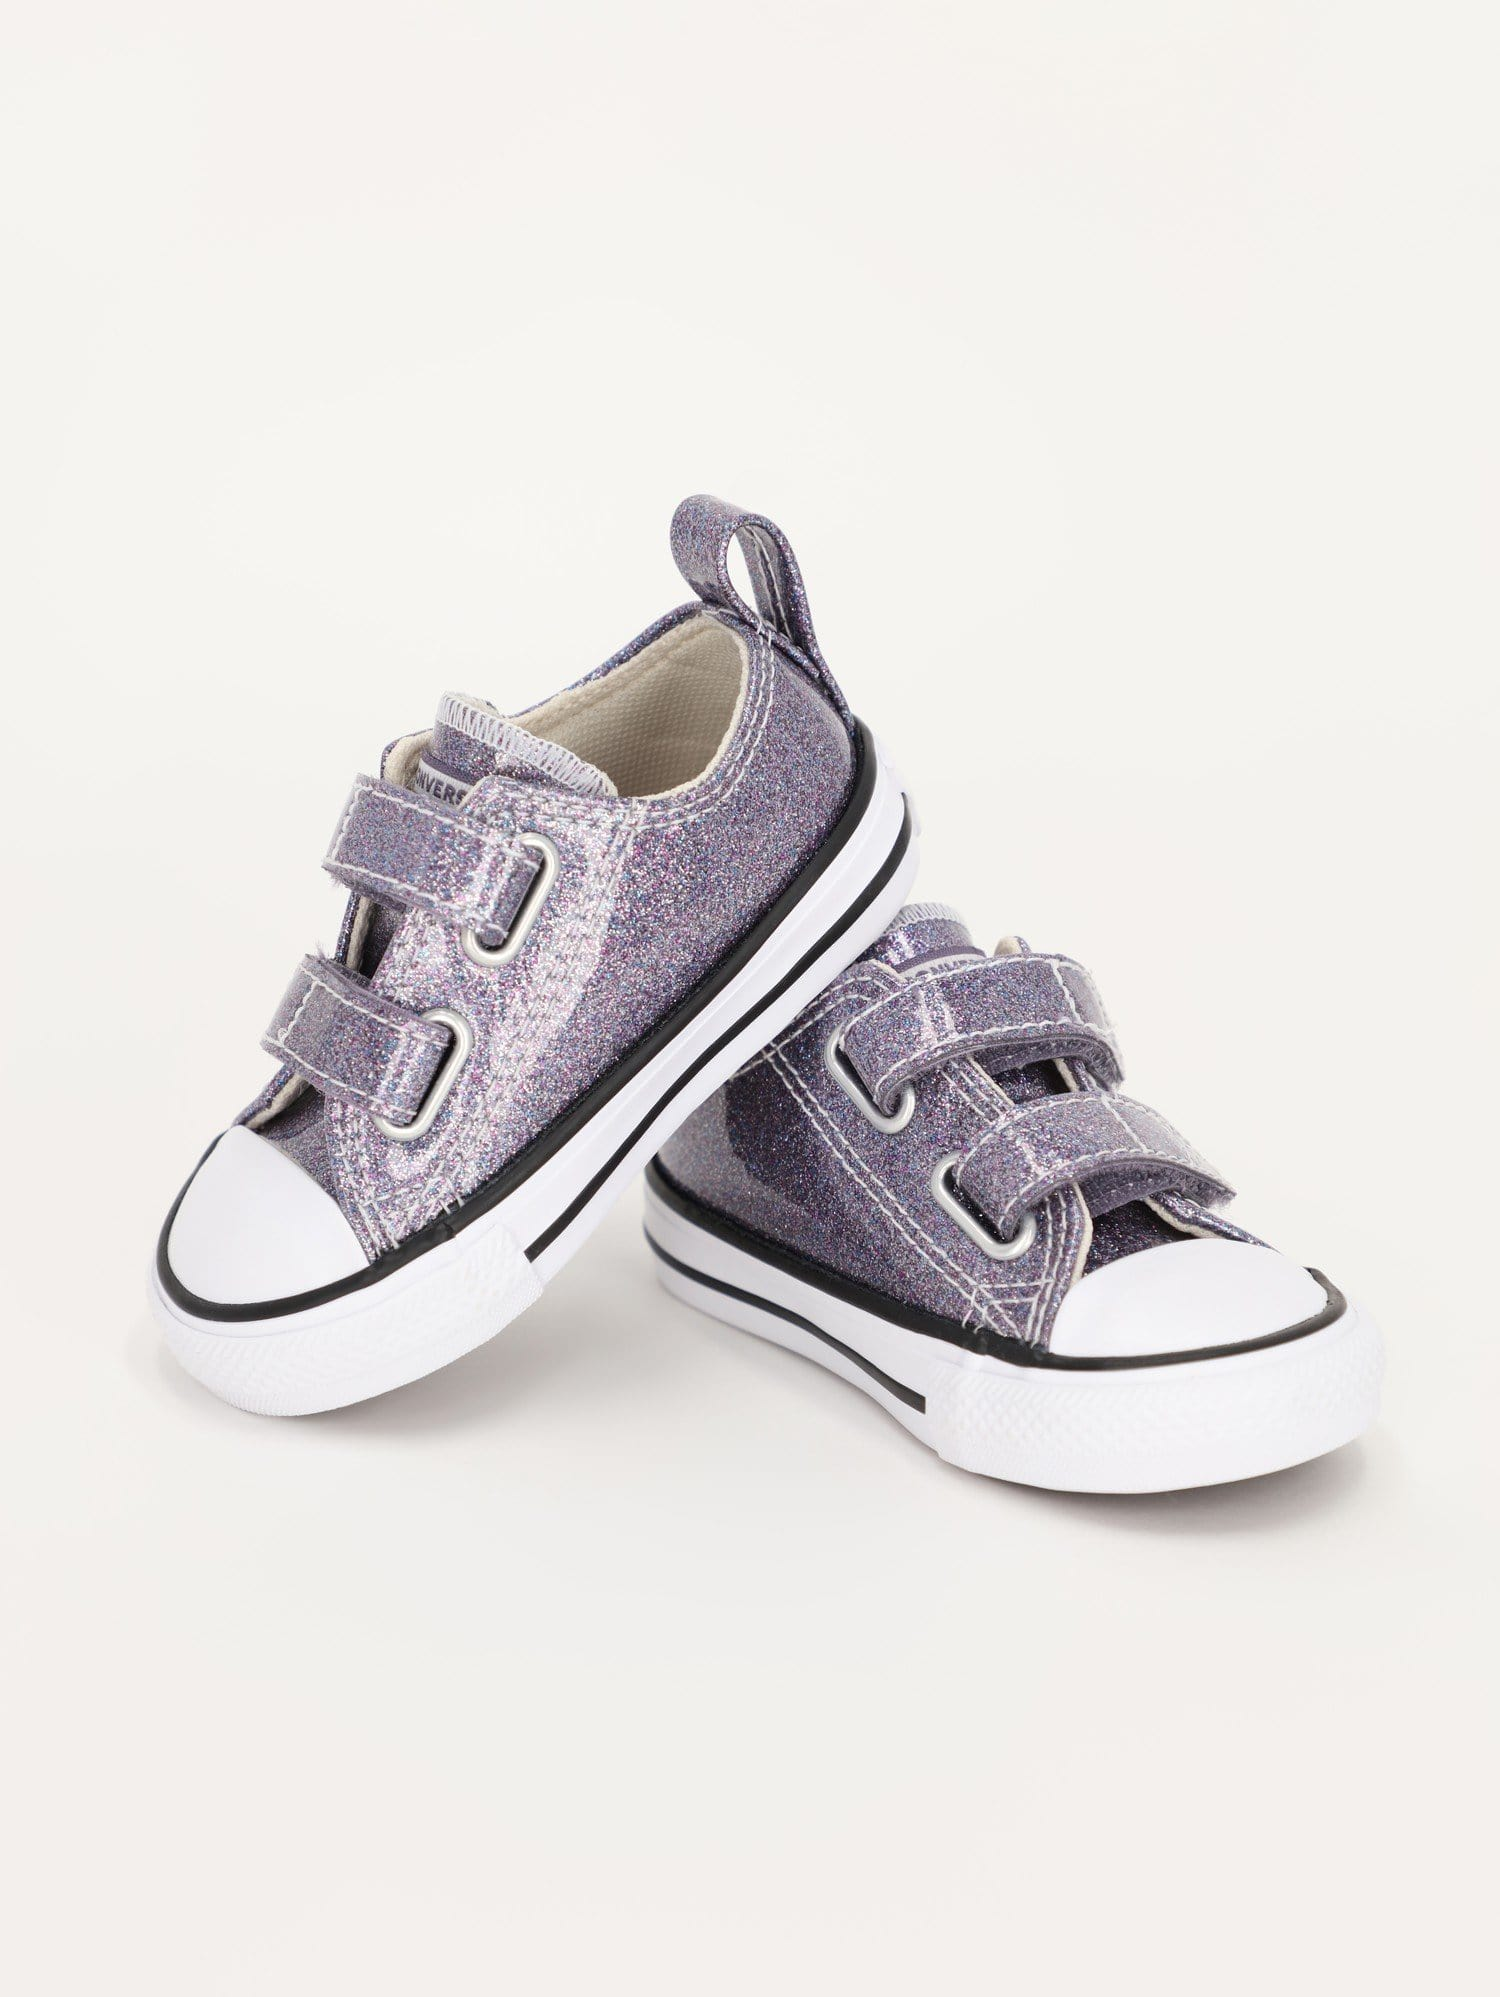 Converse Footwear Grape / 26 Kids Coated Glitter Easy-On Chuck Taylor All Star Low Top Sneakers - 768469C